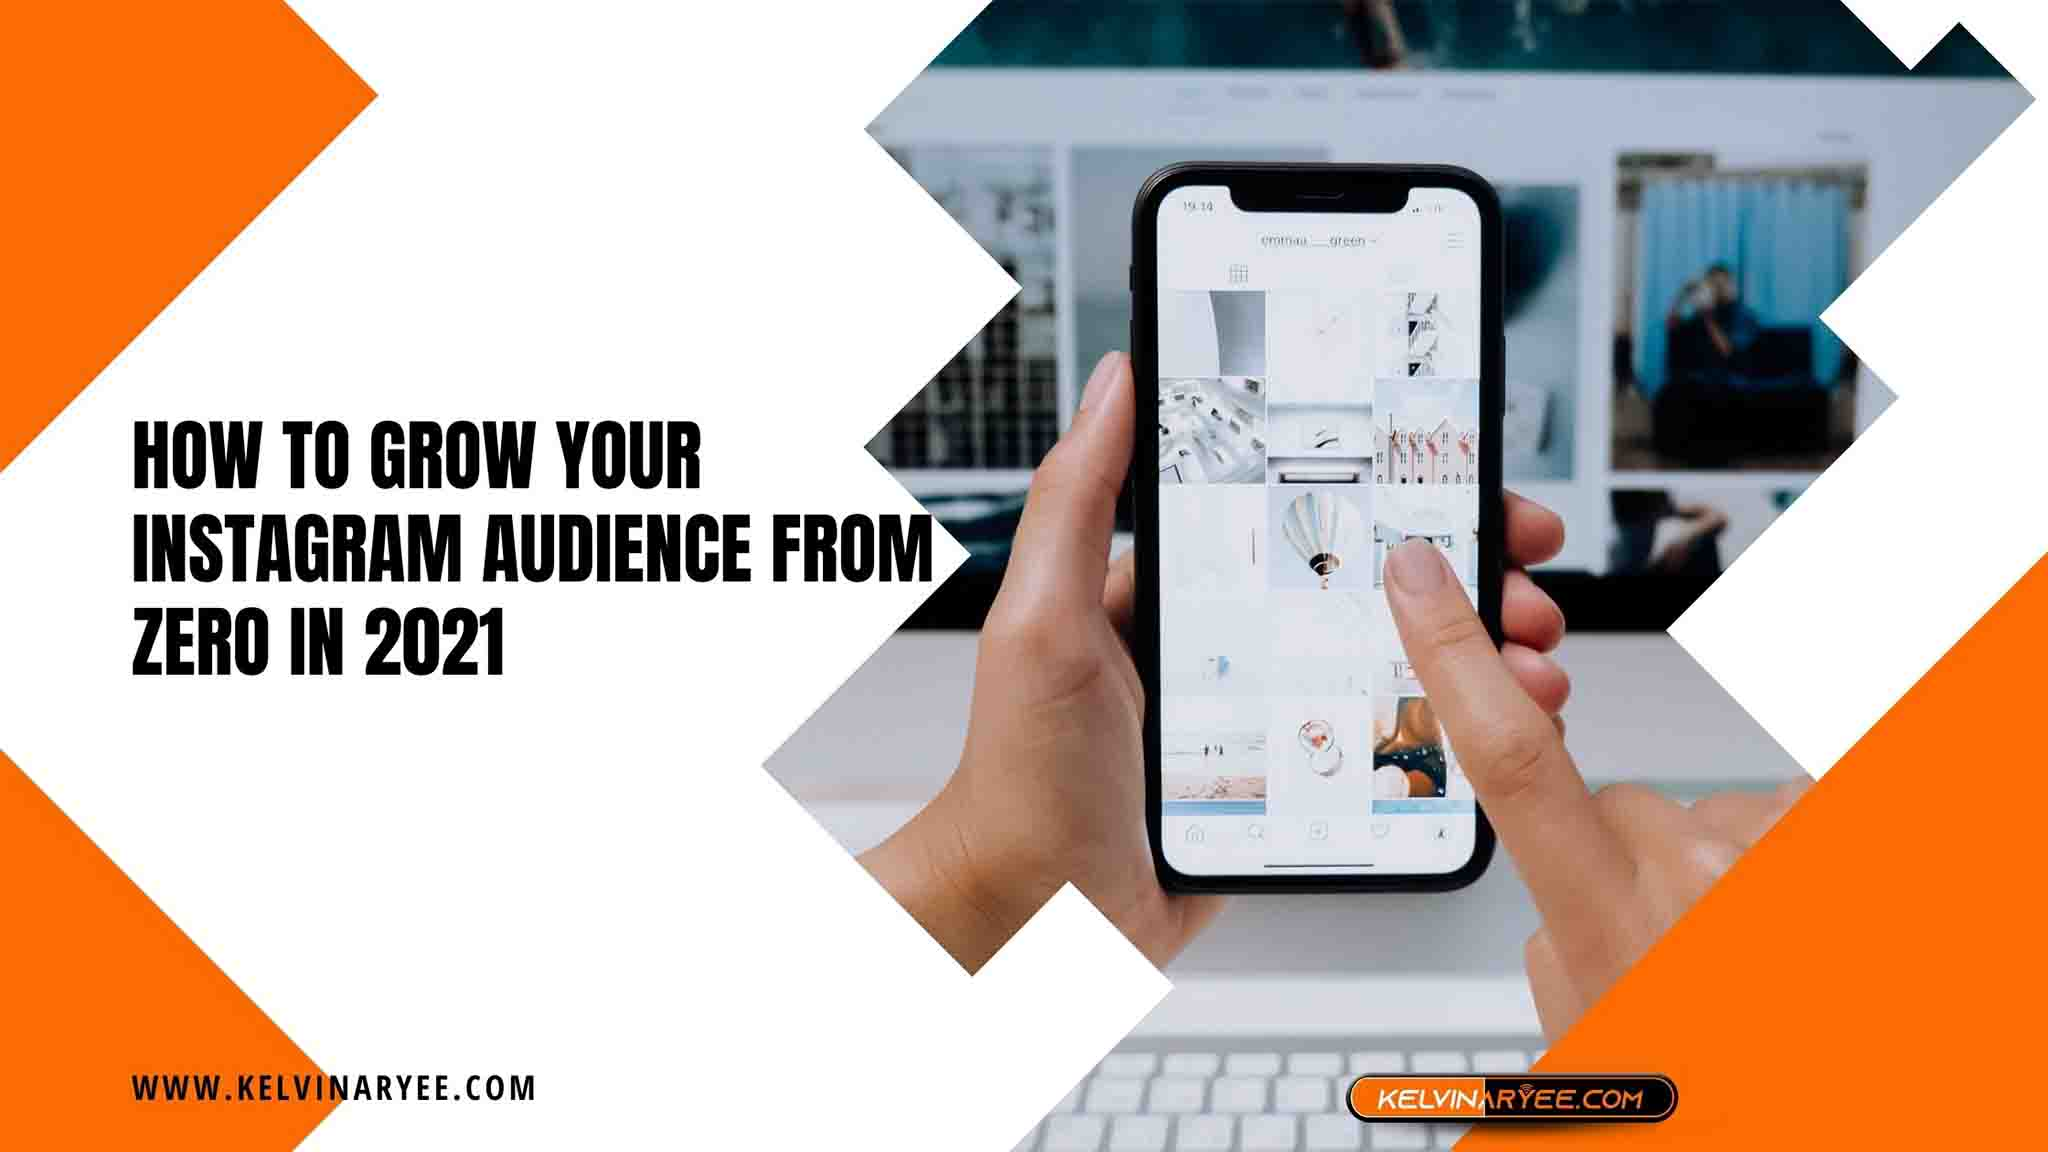 How To Grow Your Instagram Audience From Zero In 2021